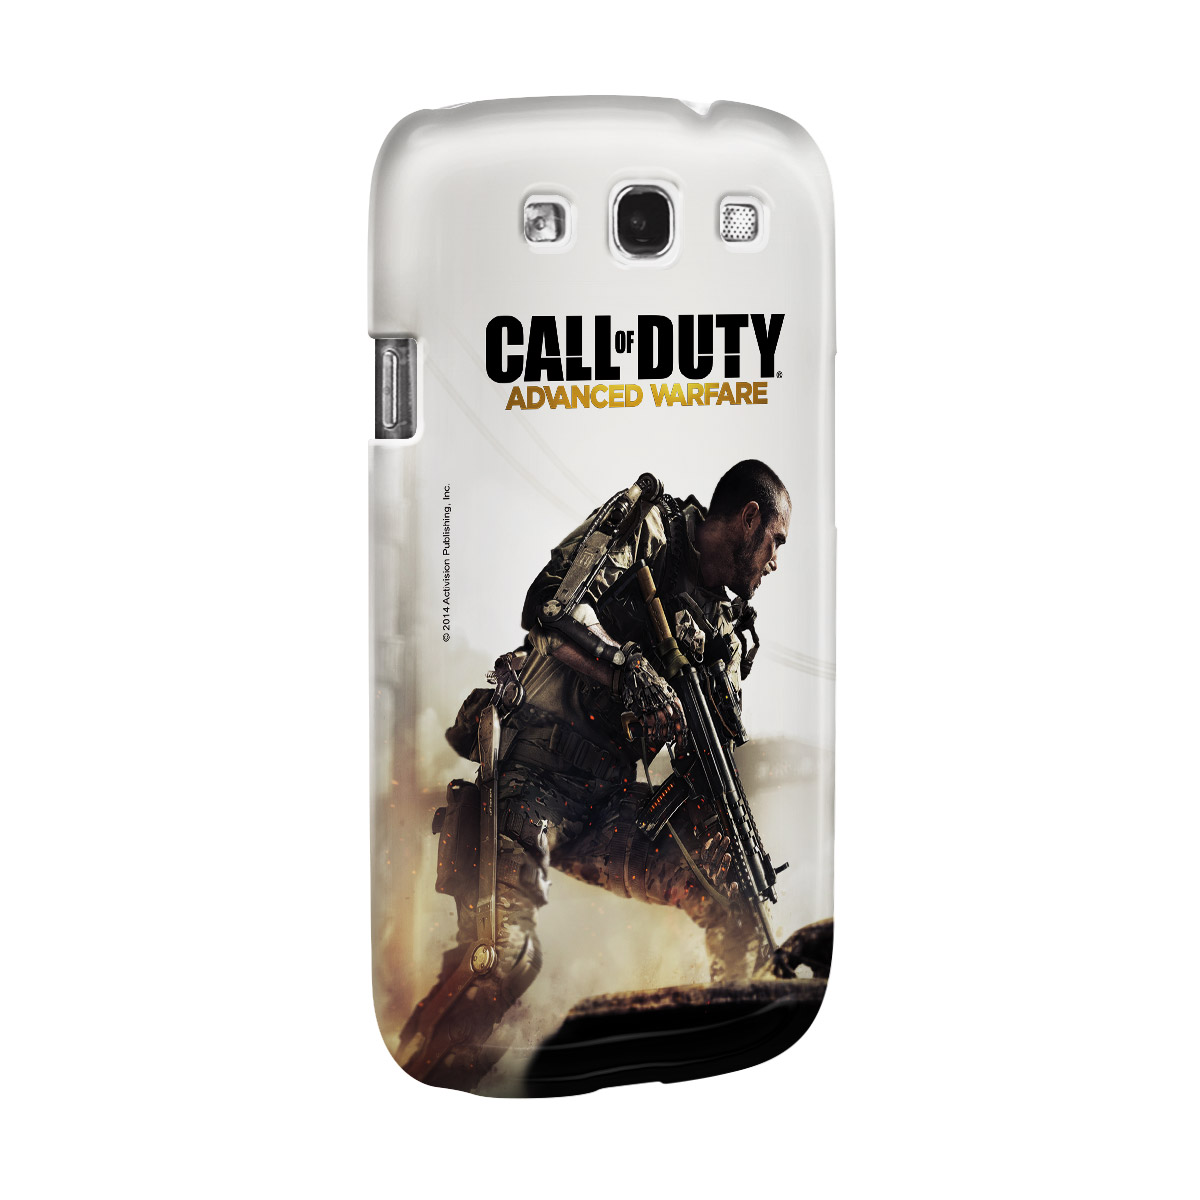 Capa de Celular Samsung Galaxy S3 Call of Duty Soldier